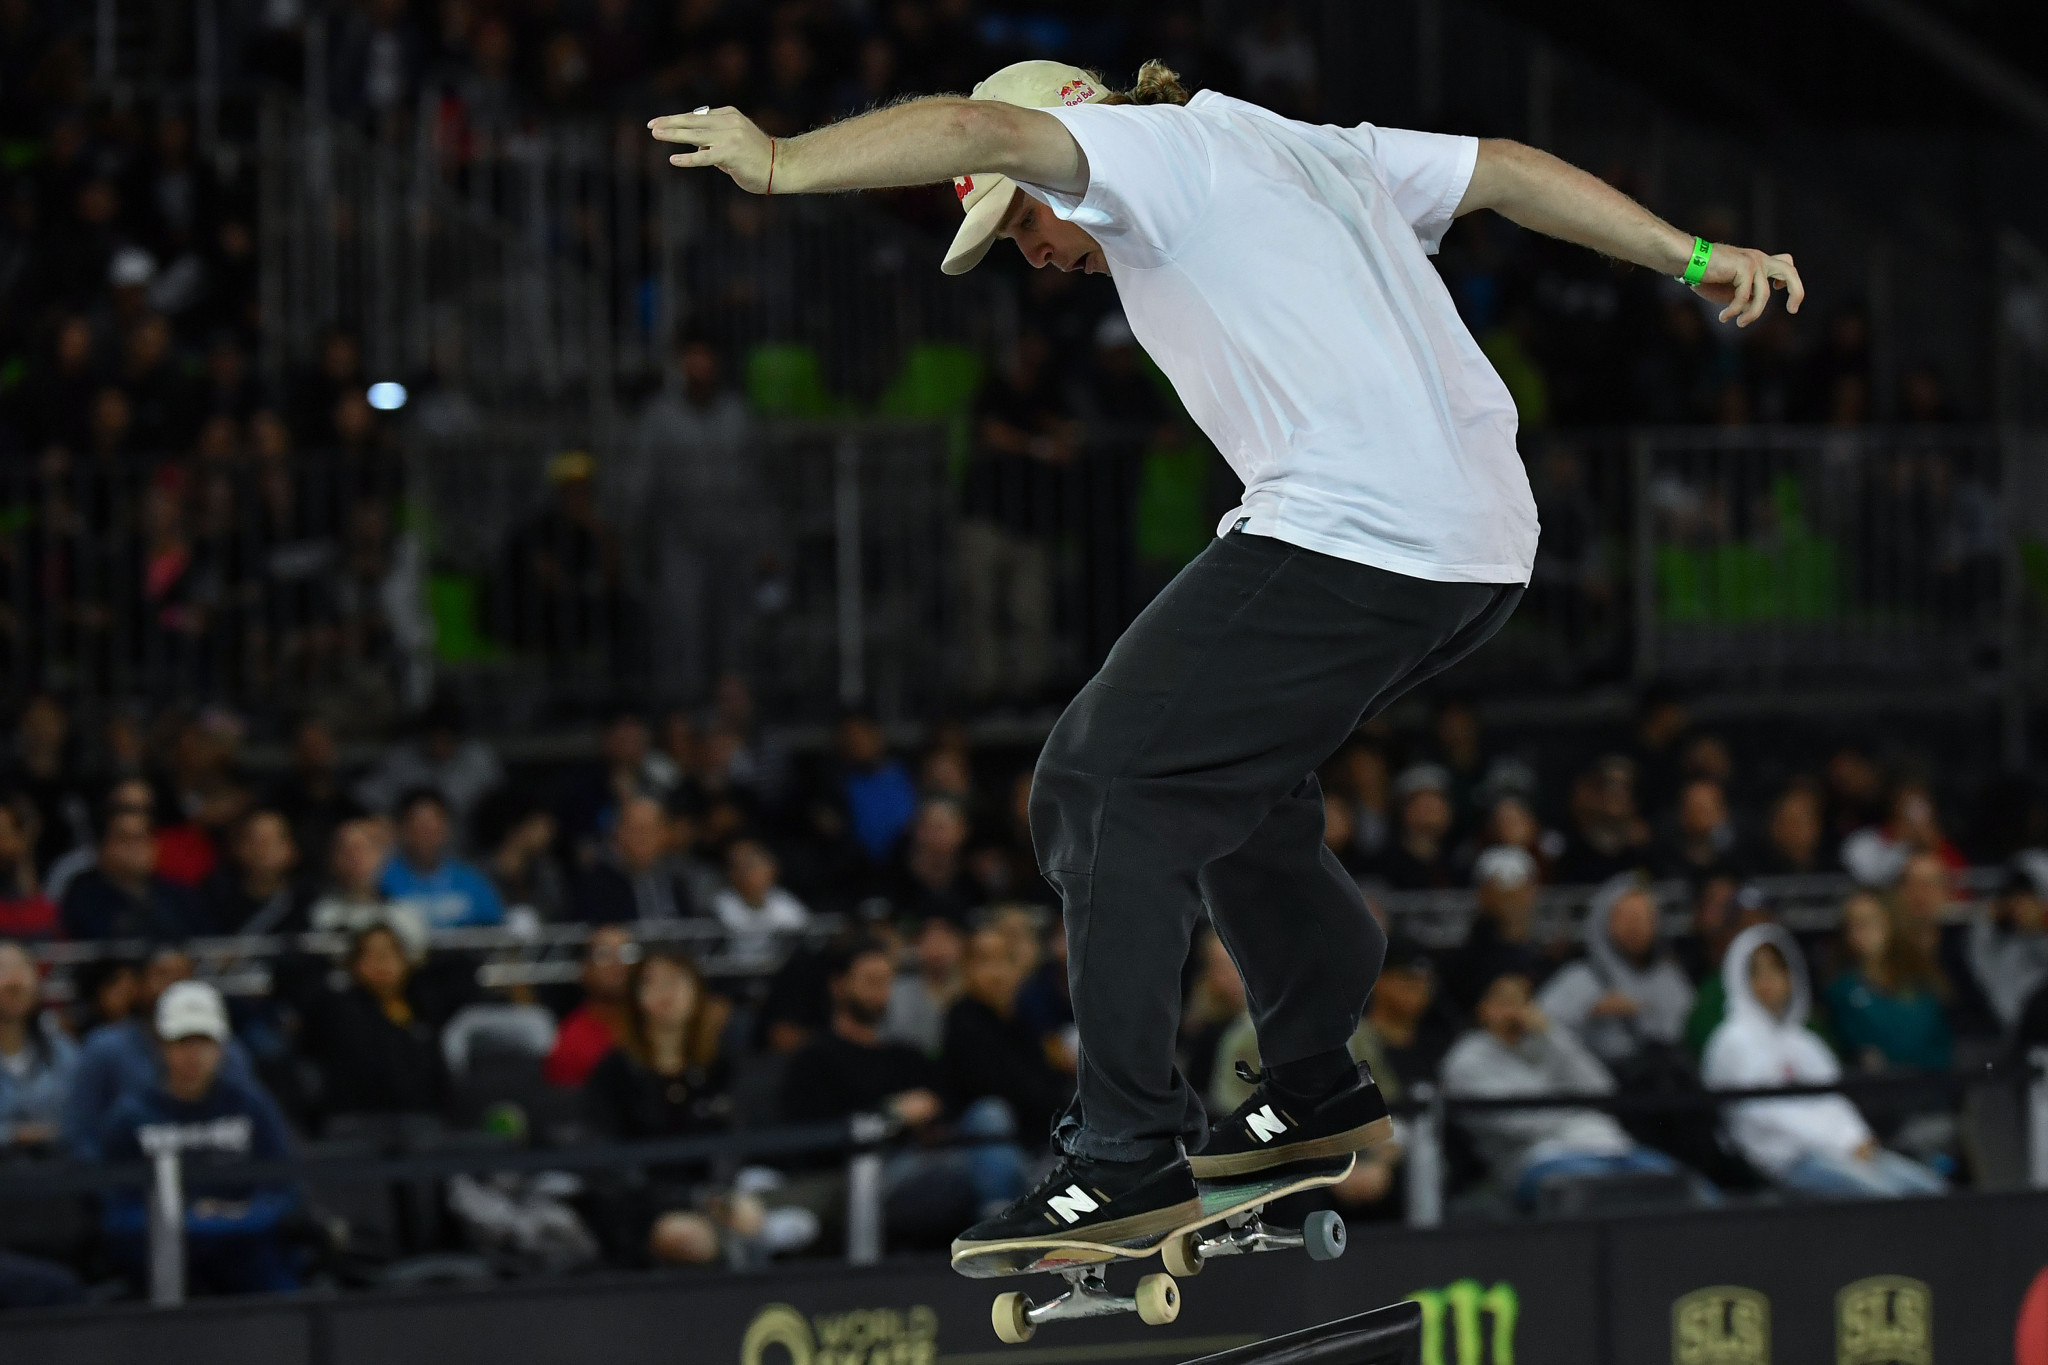 World Skate say the agreement will help develop and market the governing body's international events ©Getty Images